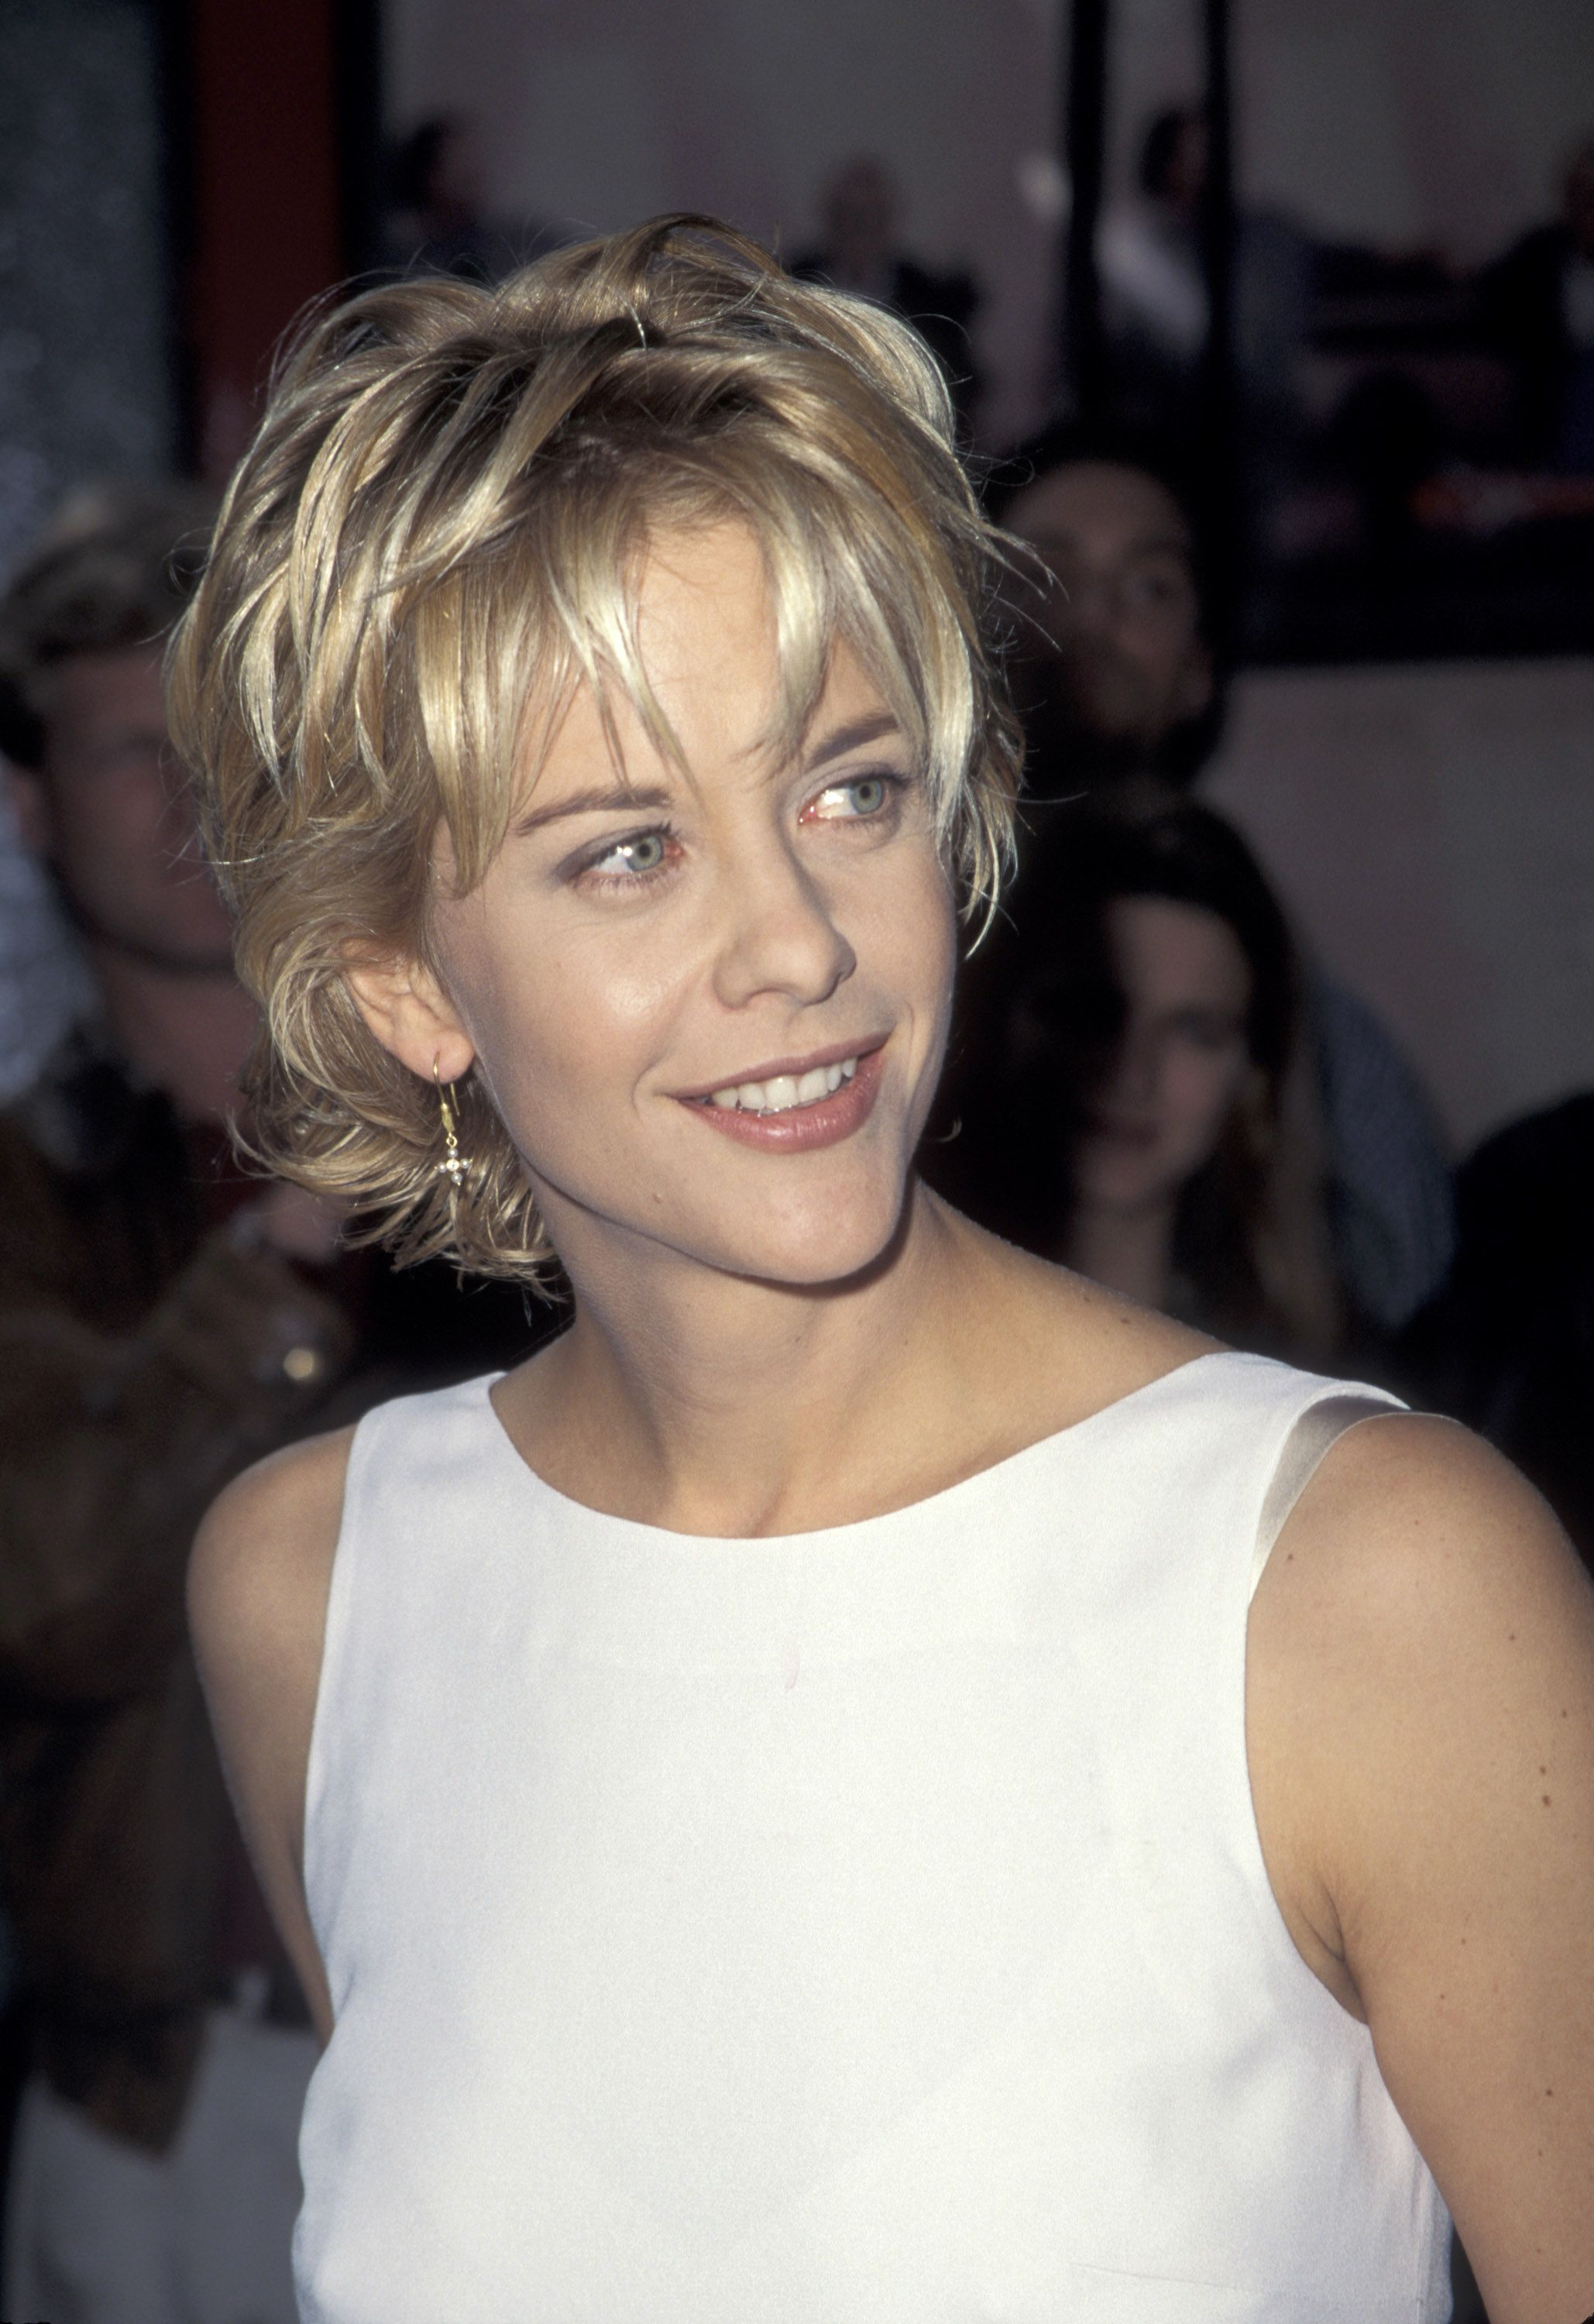 16 '90s hairstyles we're kind of still in love with | meg